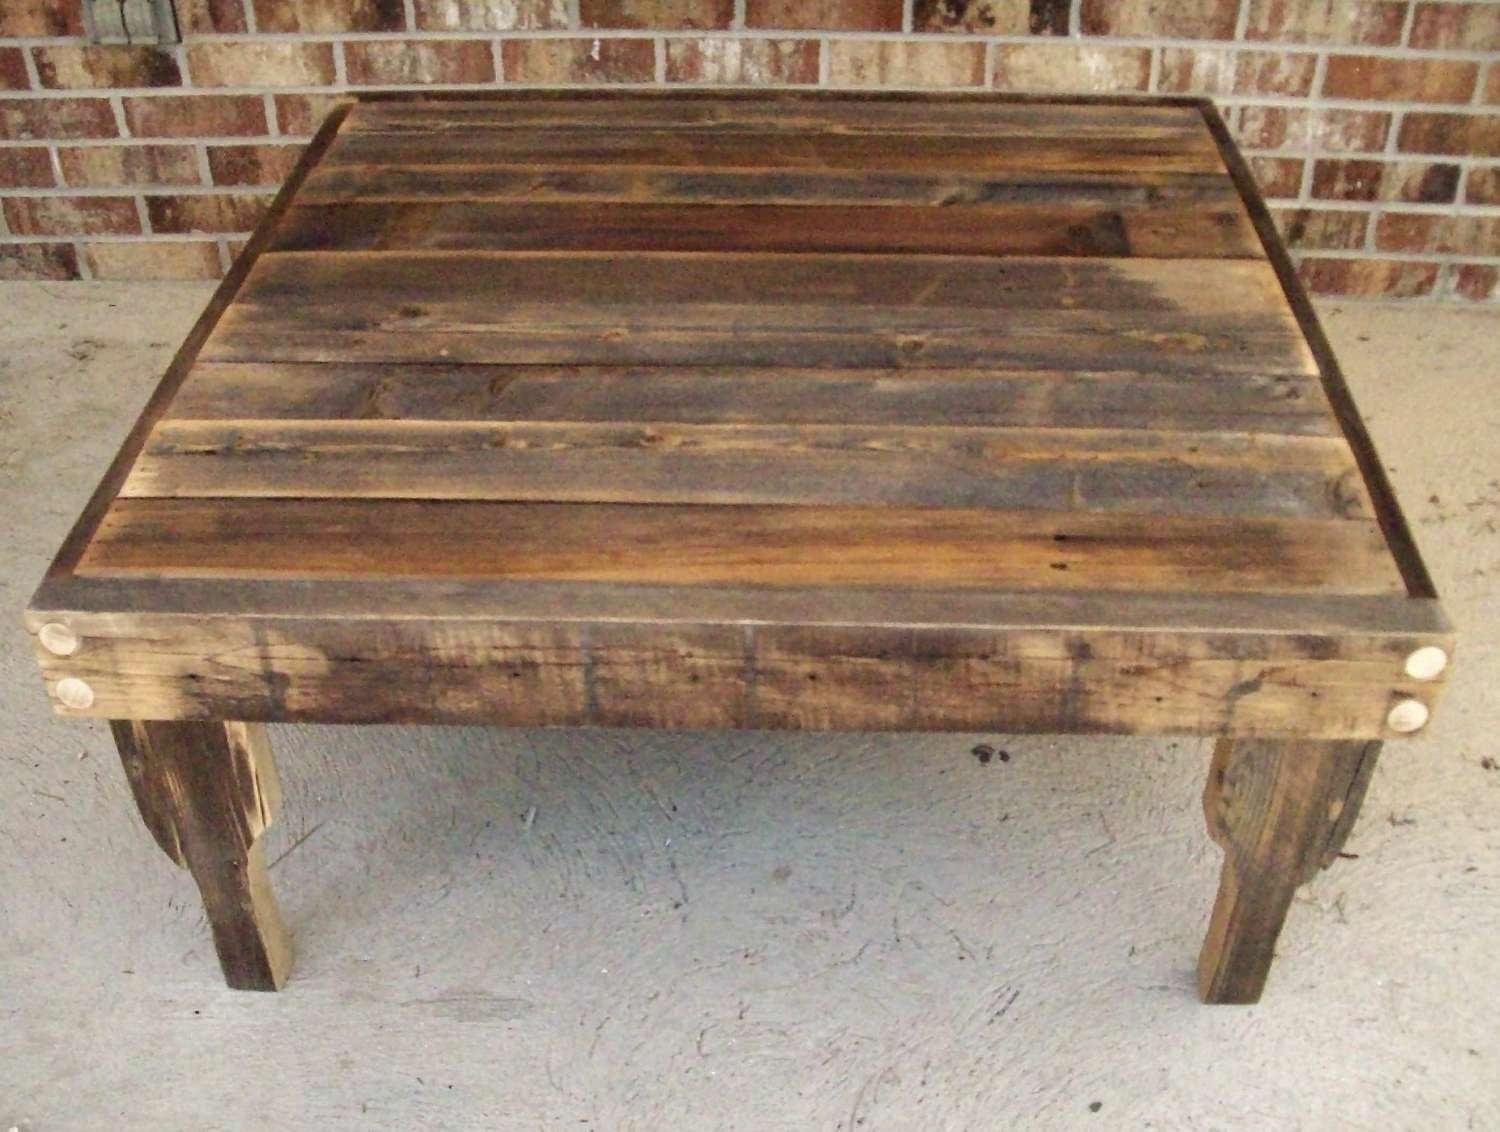 Preferred Hardwood Coffee Tables With Storage Within Coffee Tables : Simple Large Wood Coffee Table Square With Drawers (View 17 of 20)